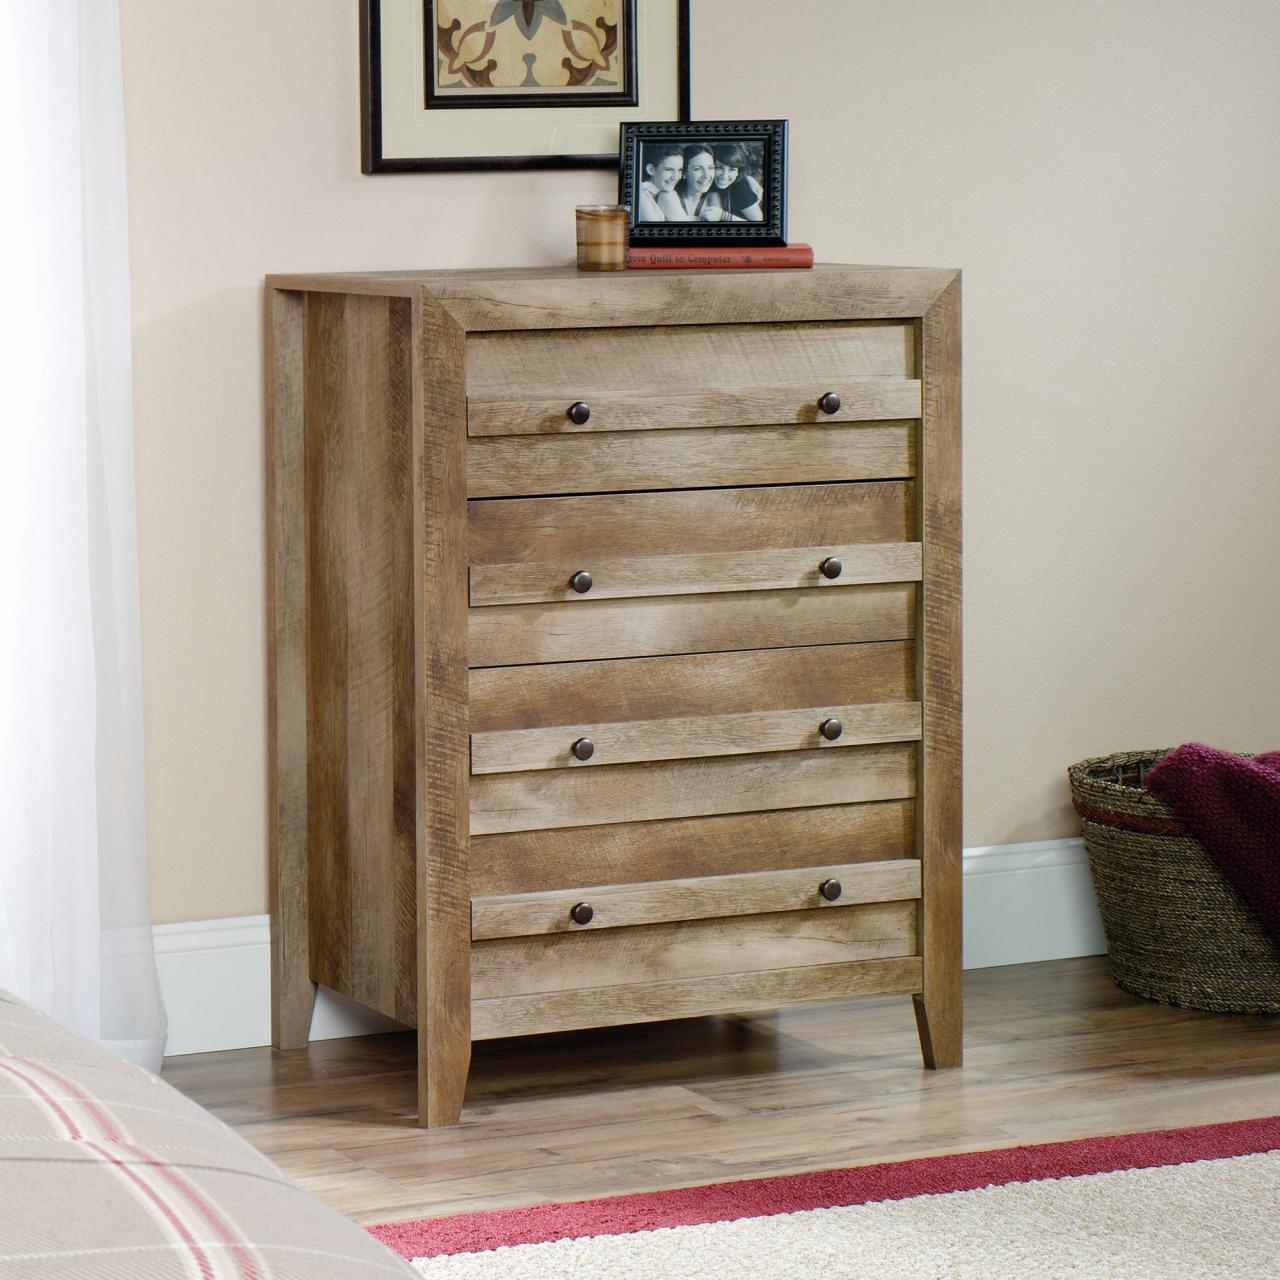 Image of: Rustic Dressers Tall Bedroom